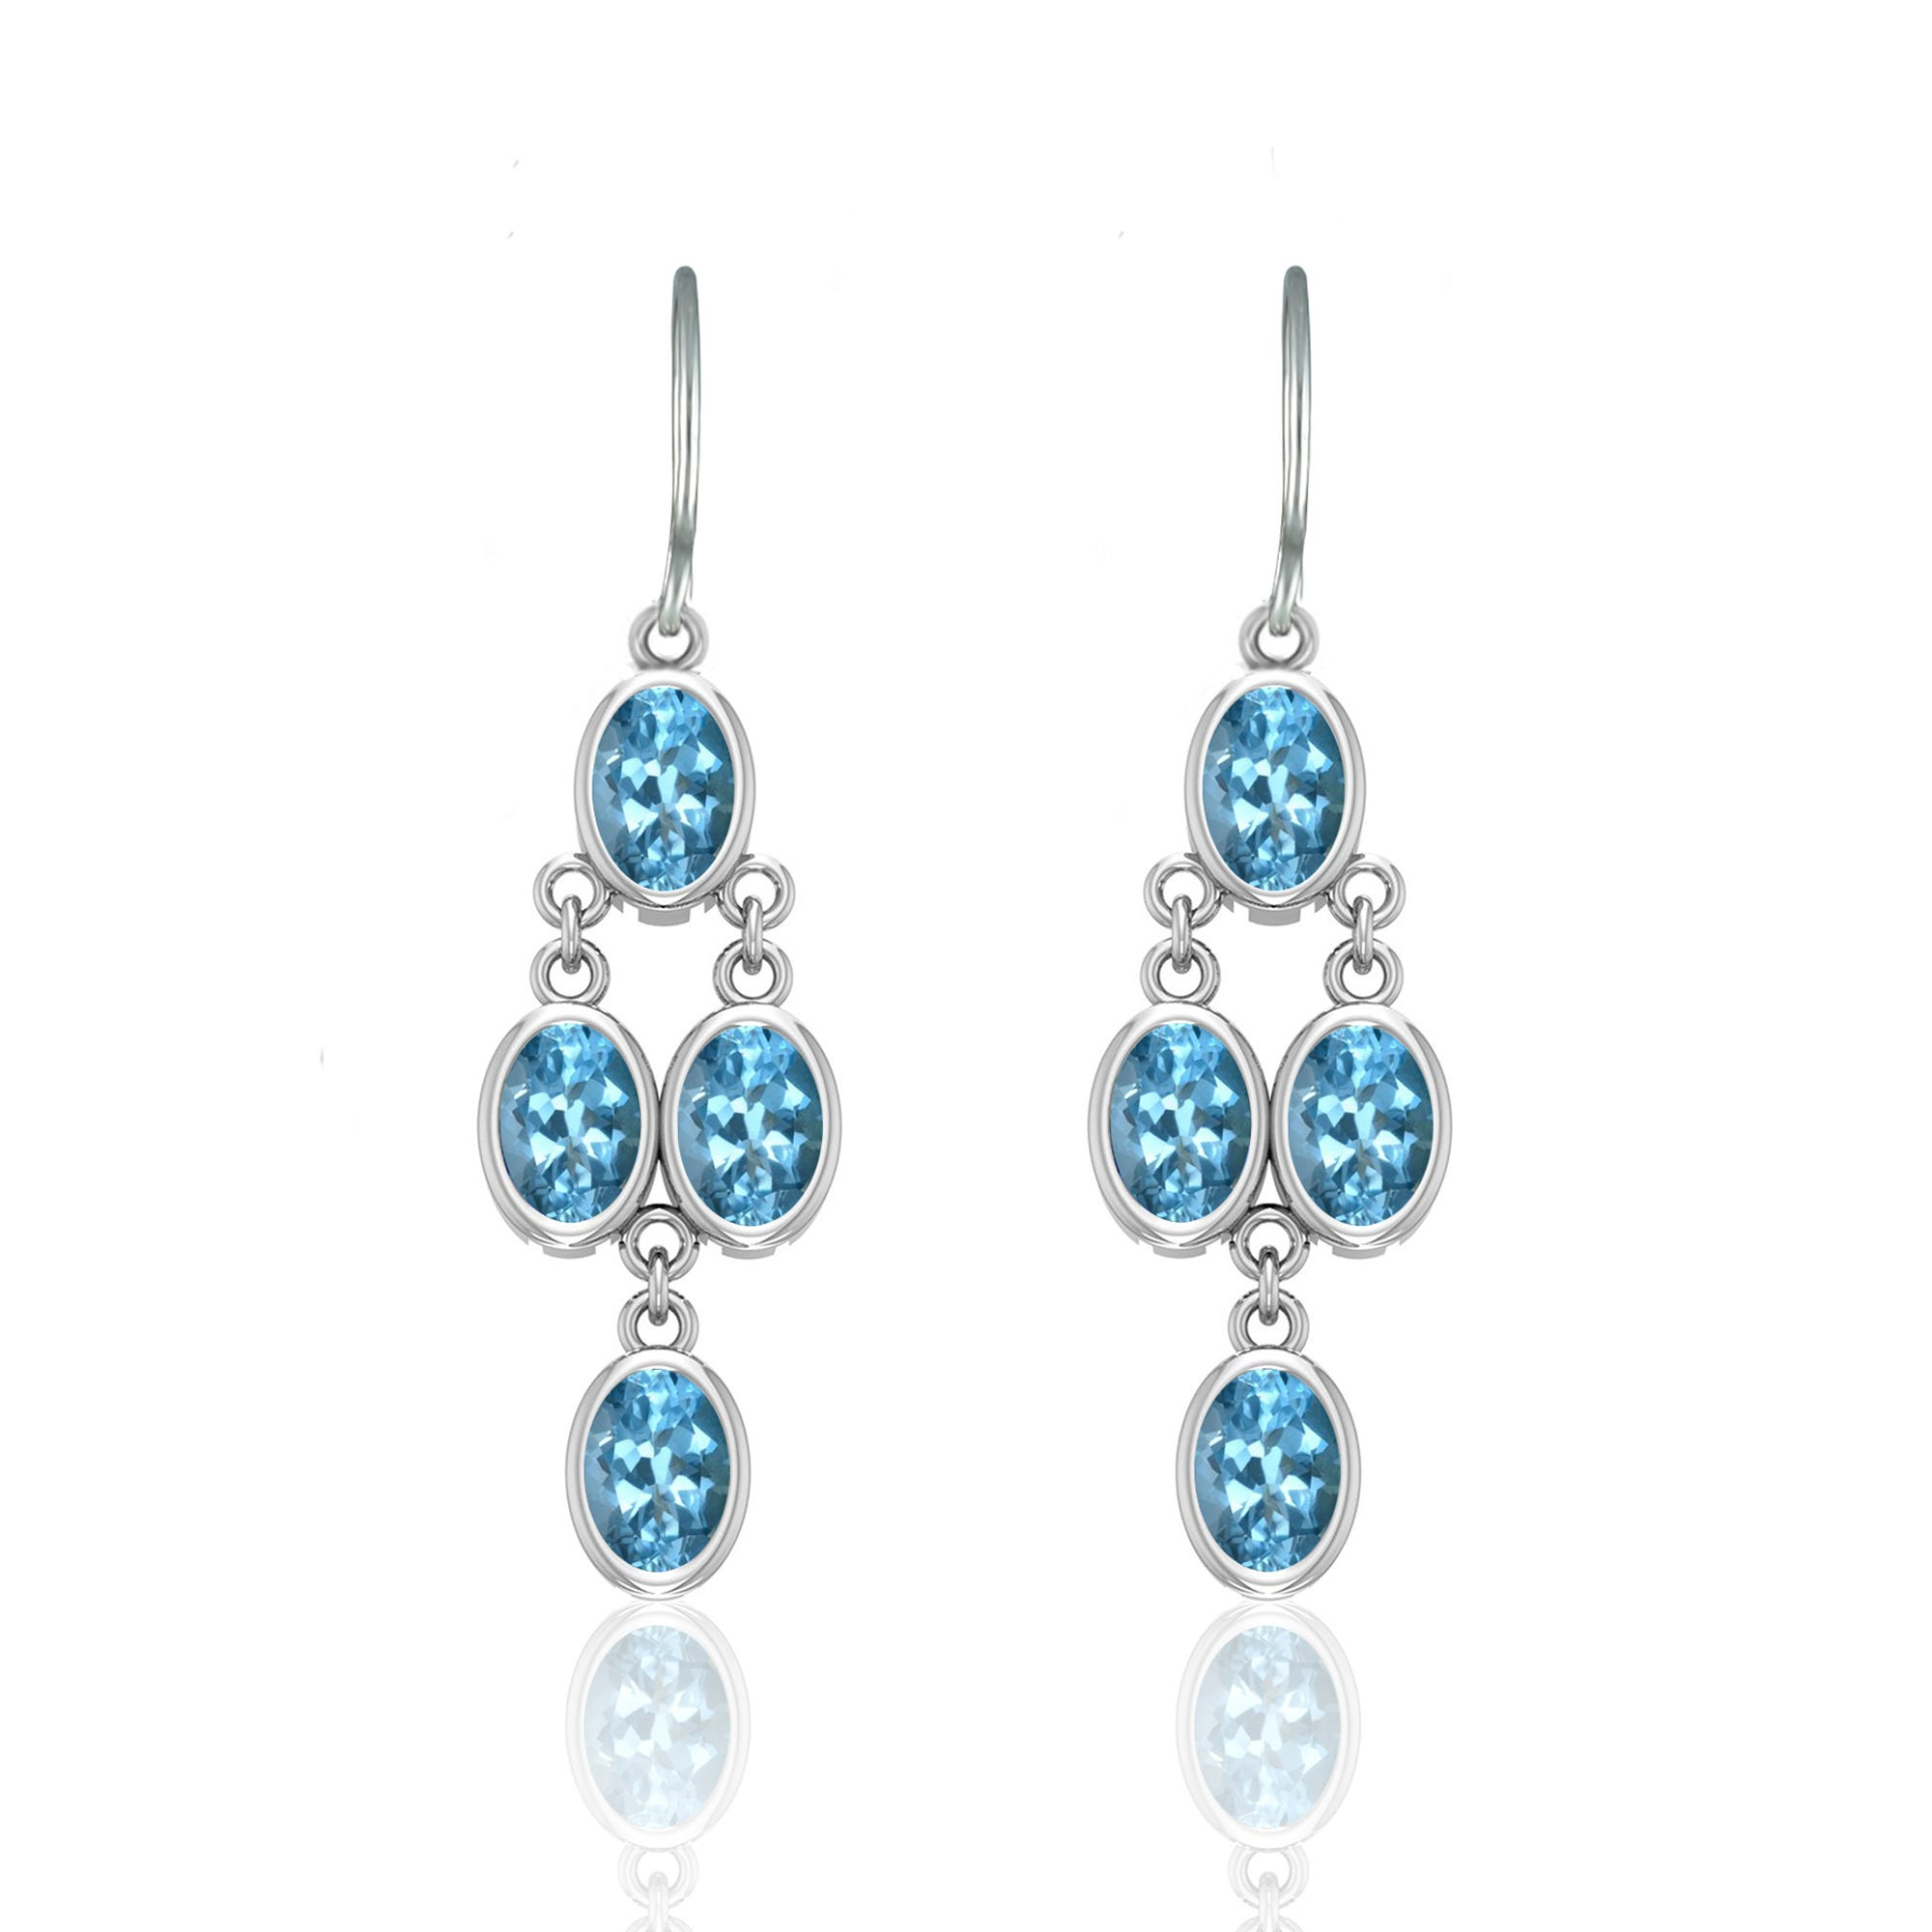 Oval Blue Topaz Chandelier Earrings in Sterling Silver